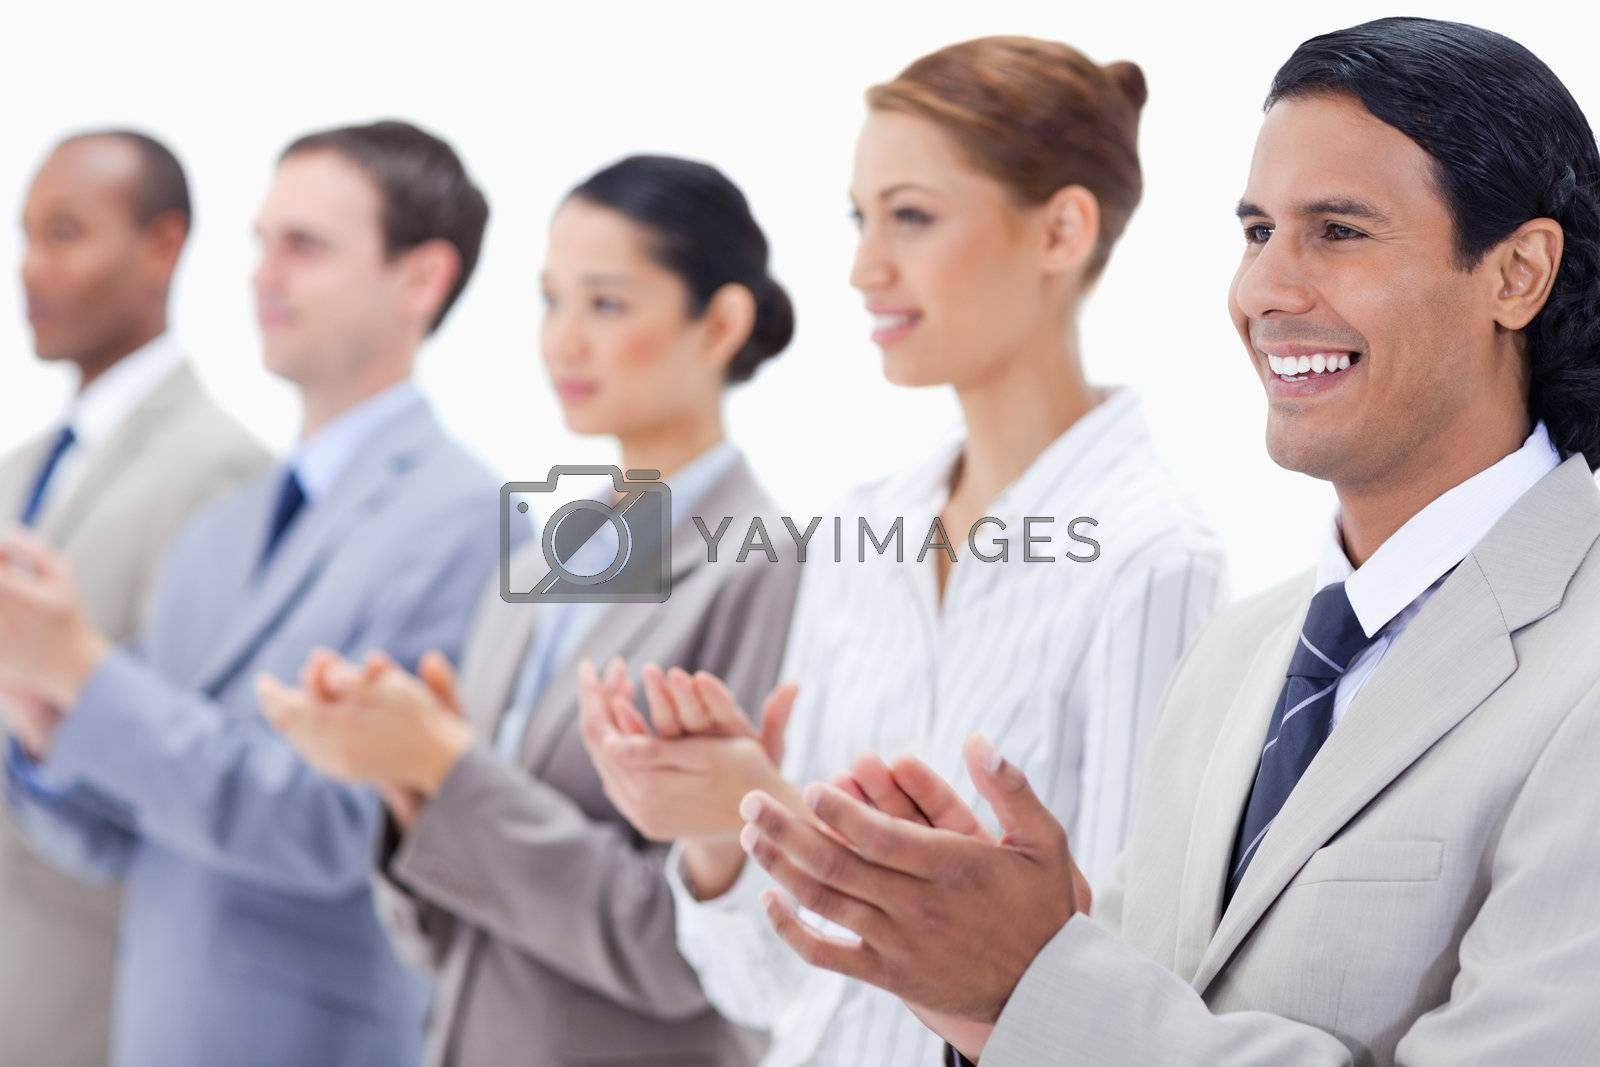 Business team applauding while looking towards the left side with focus on the first man against white background